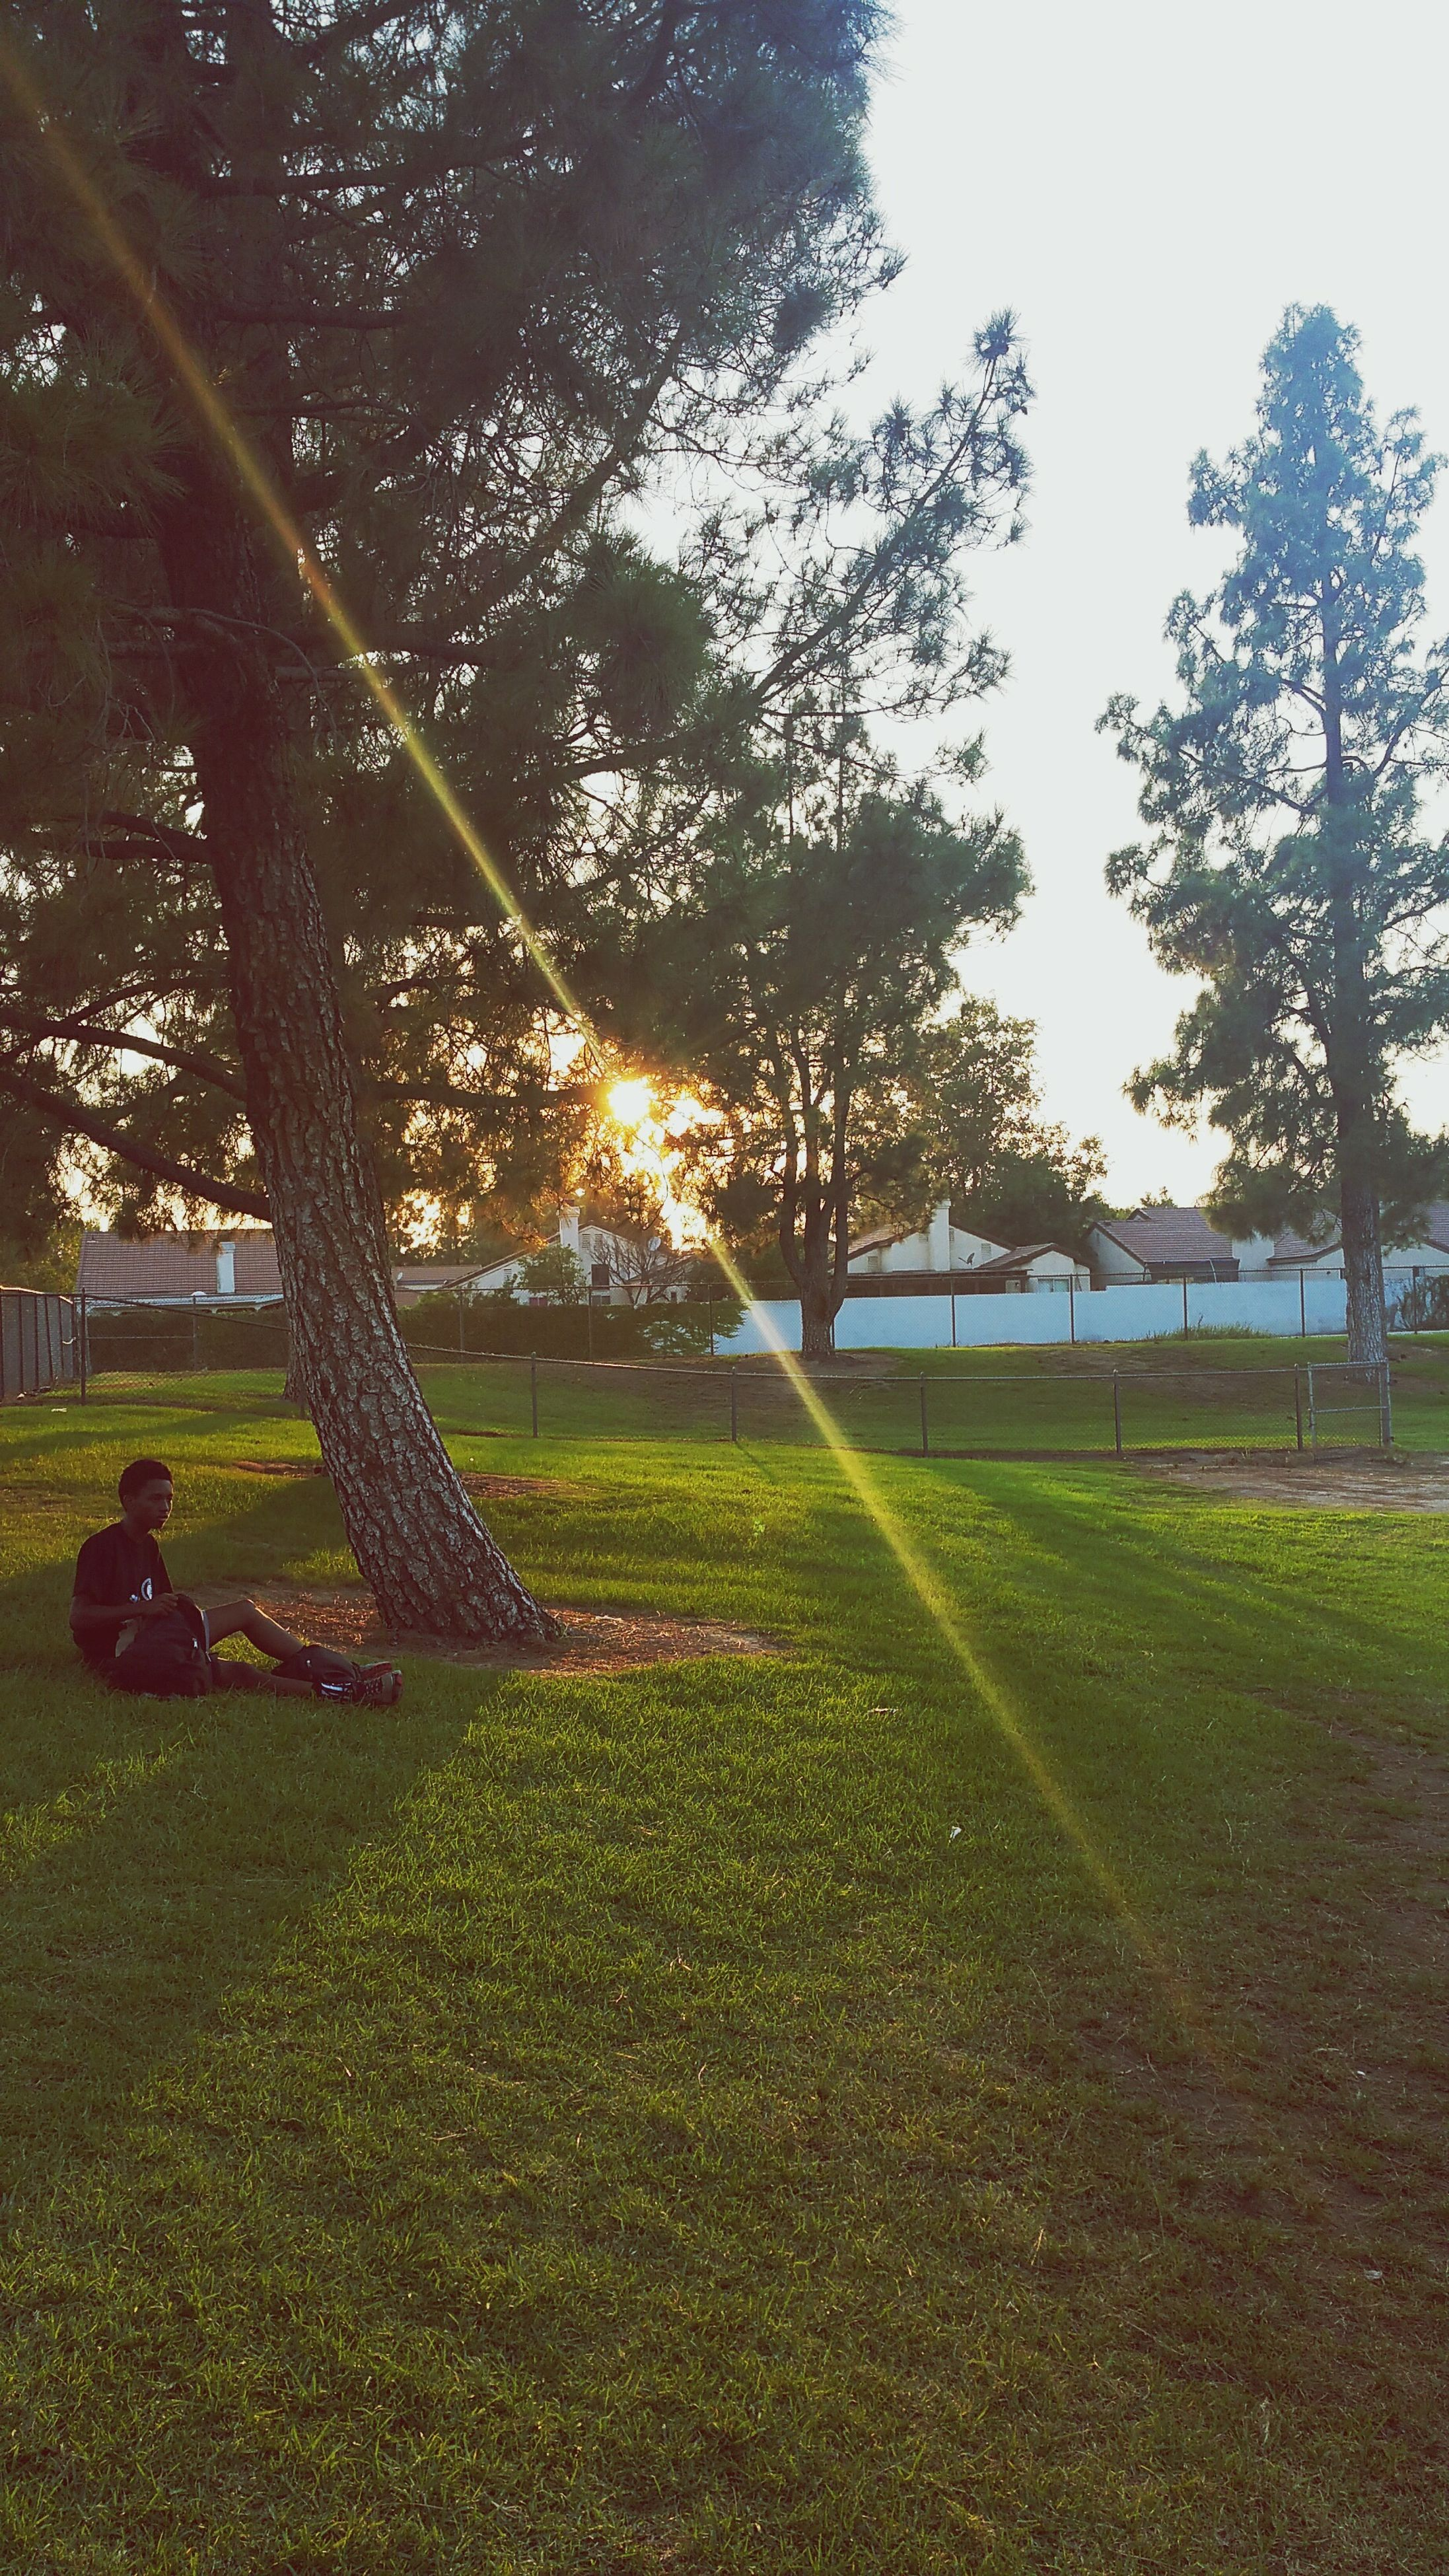 grass, tree, sunlight, field, sun, tranquility, sunbeam, green color, grassy, tranquil scene, growth, park - man made space, lens flare, landscape, nature, beauty in nature, shadow, scenics, sky, sunny